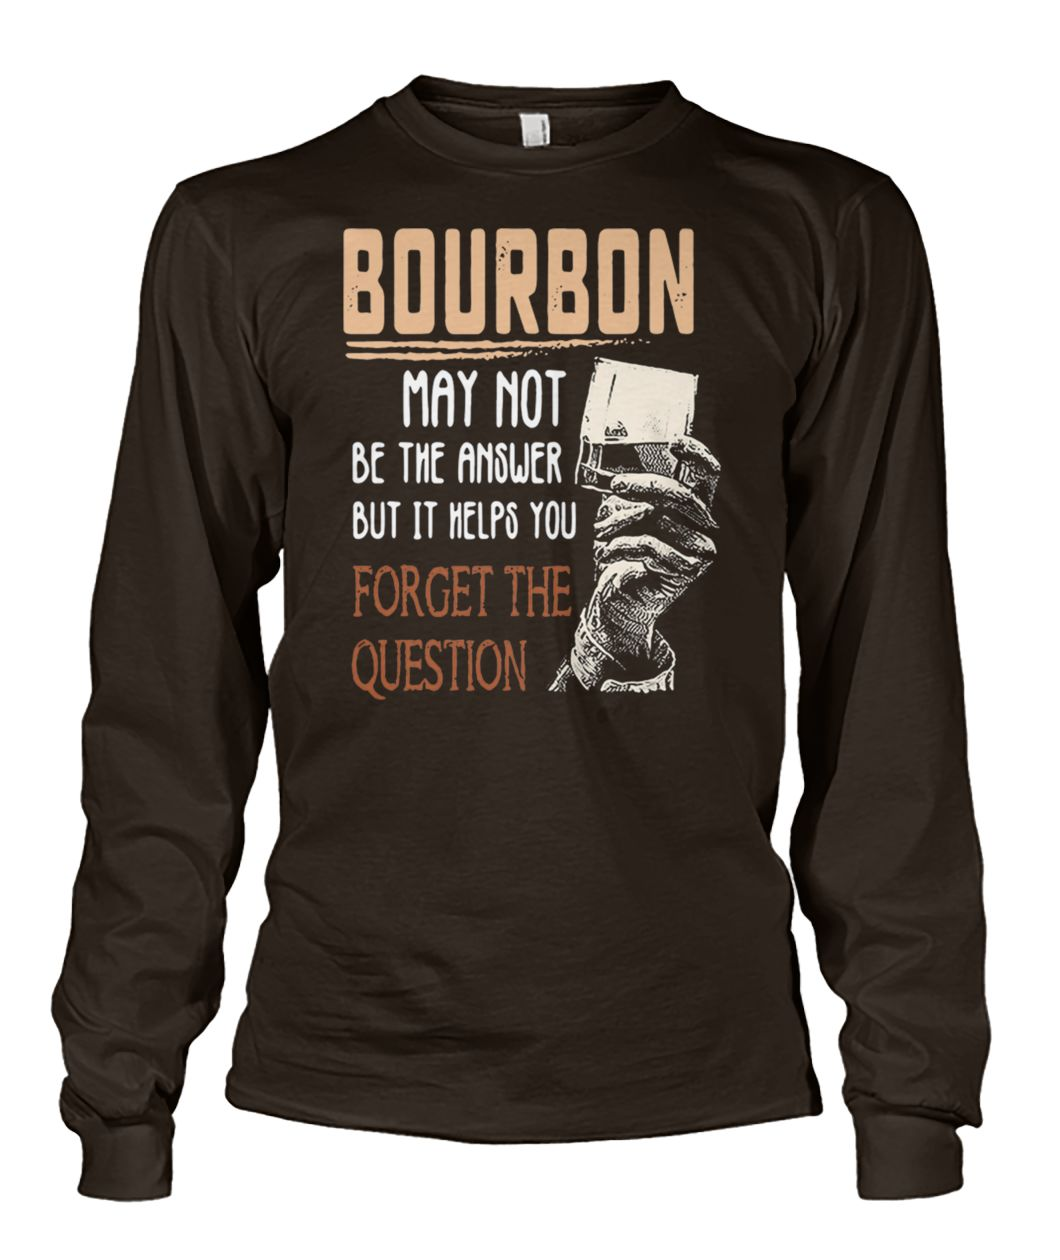 Bourbon may not be the answer but it helps you forget the question unisex long sleeve